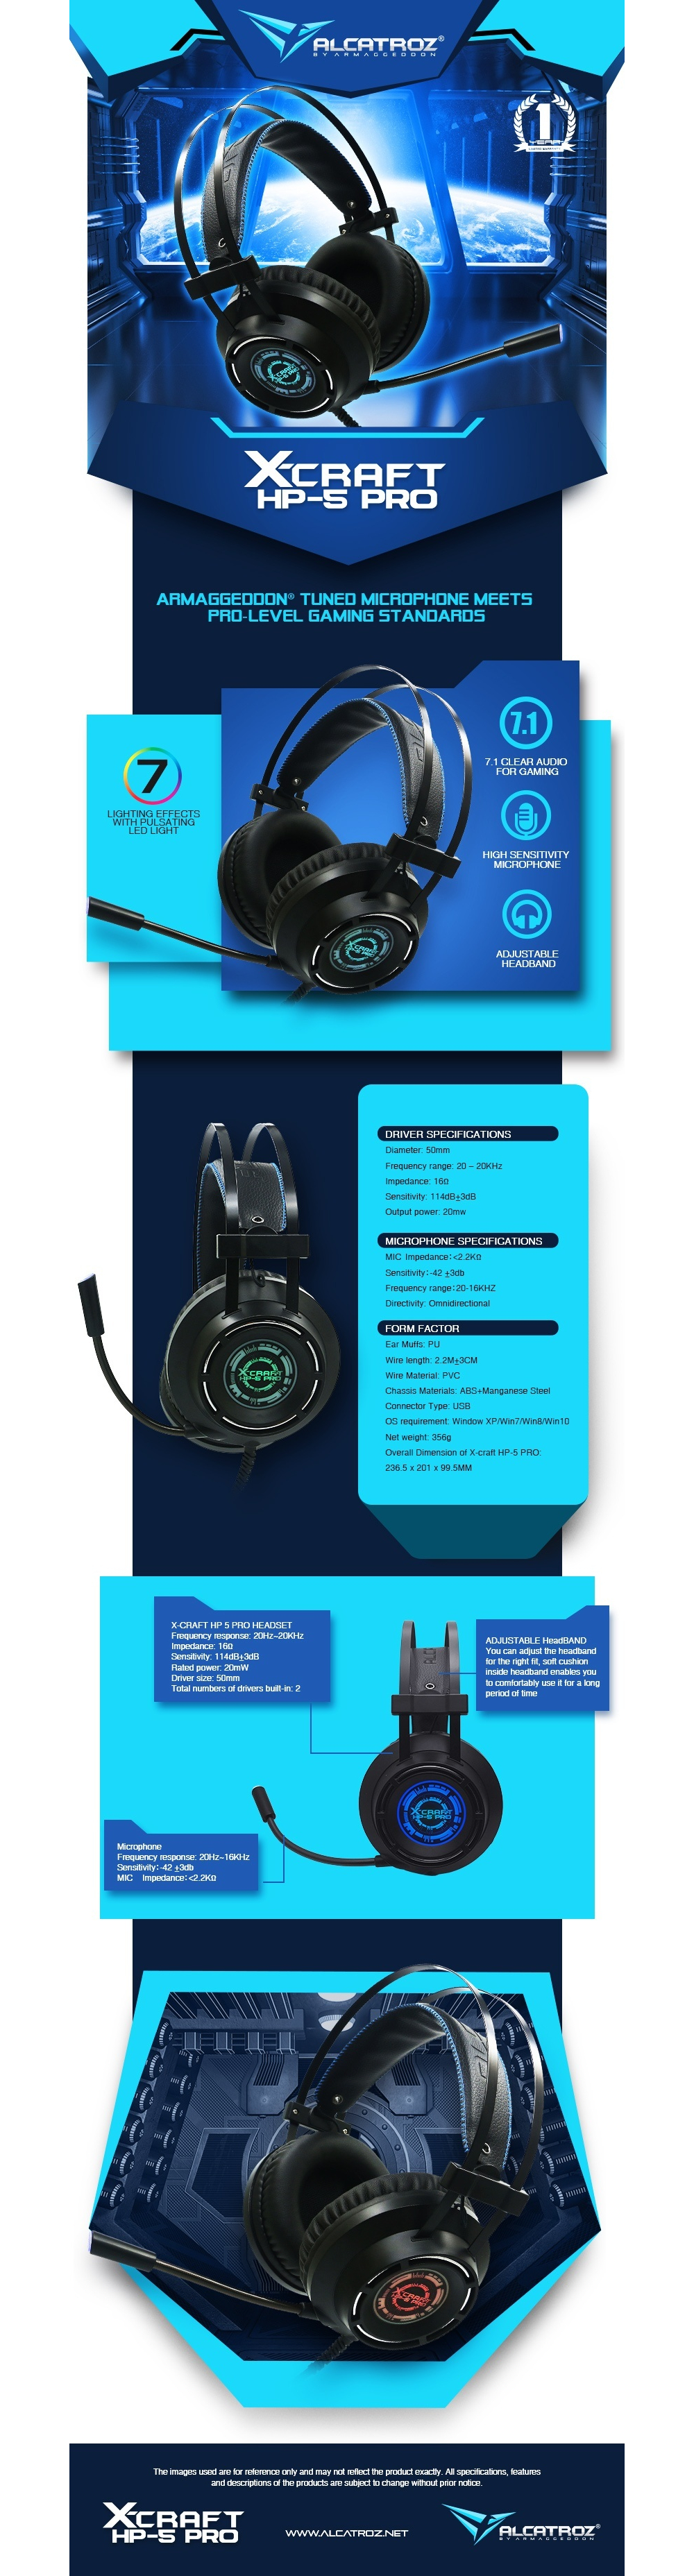 Alcatroz X-Craft HP-5 Pro Gaming Headset